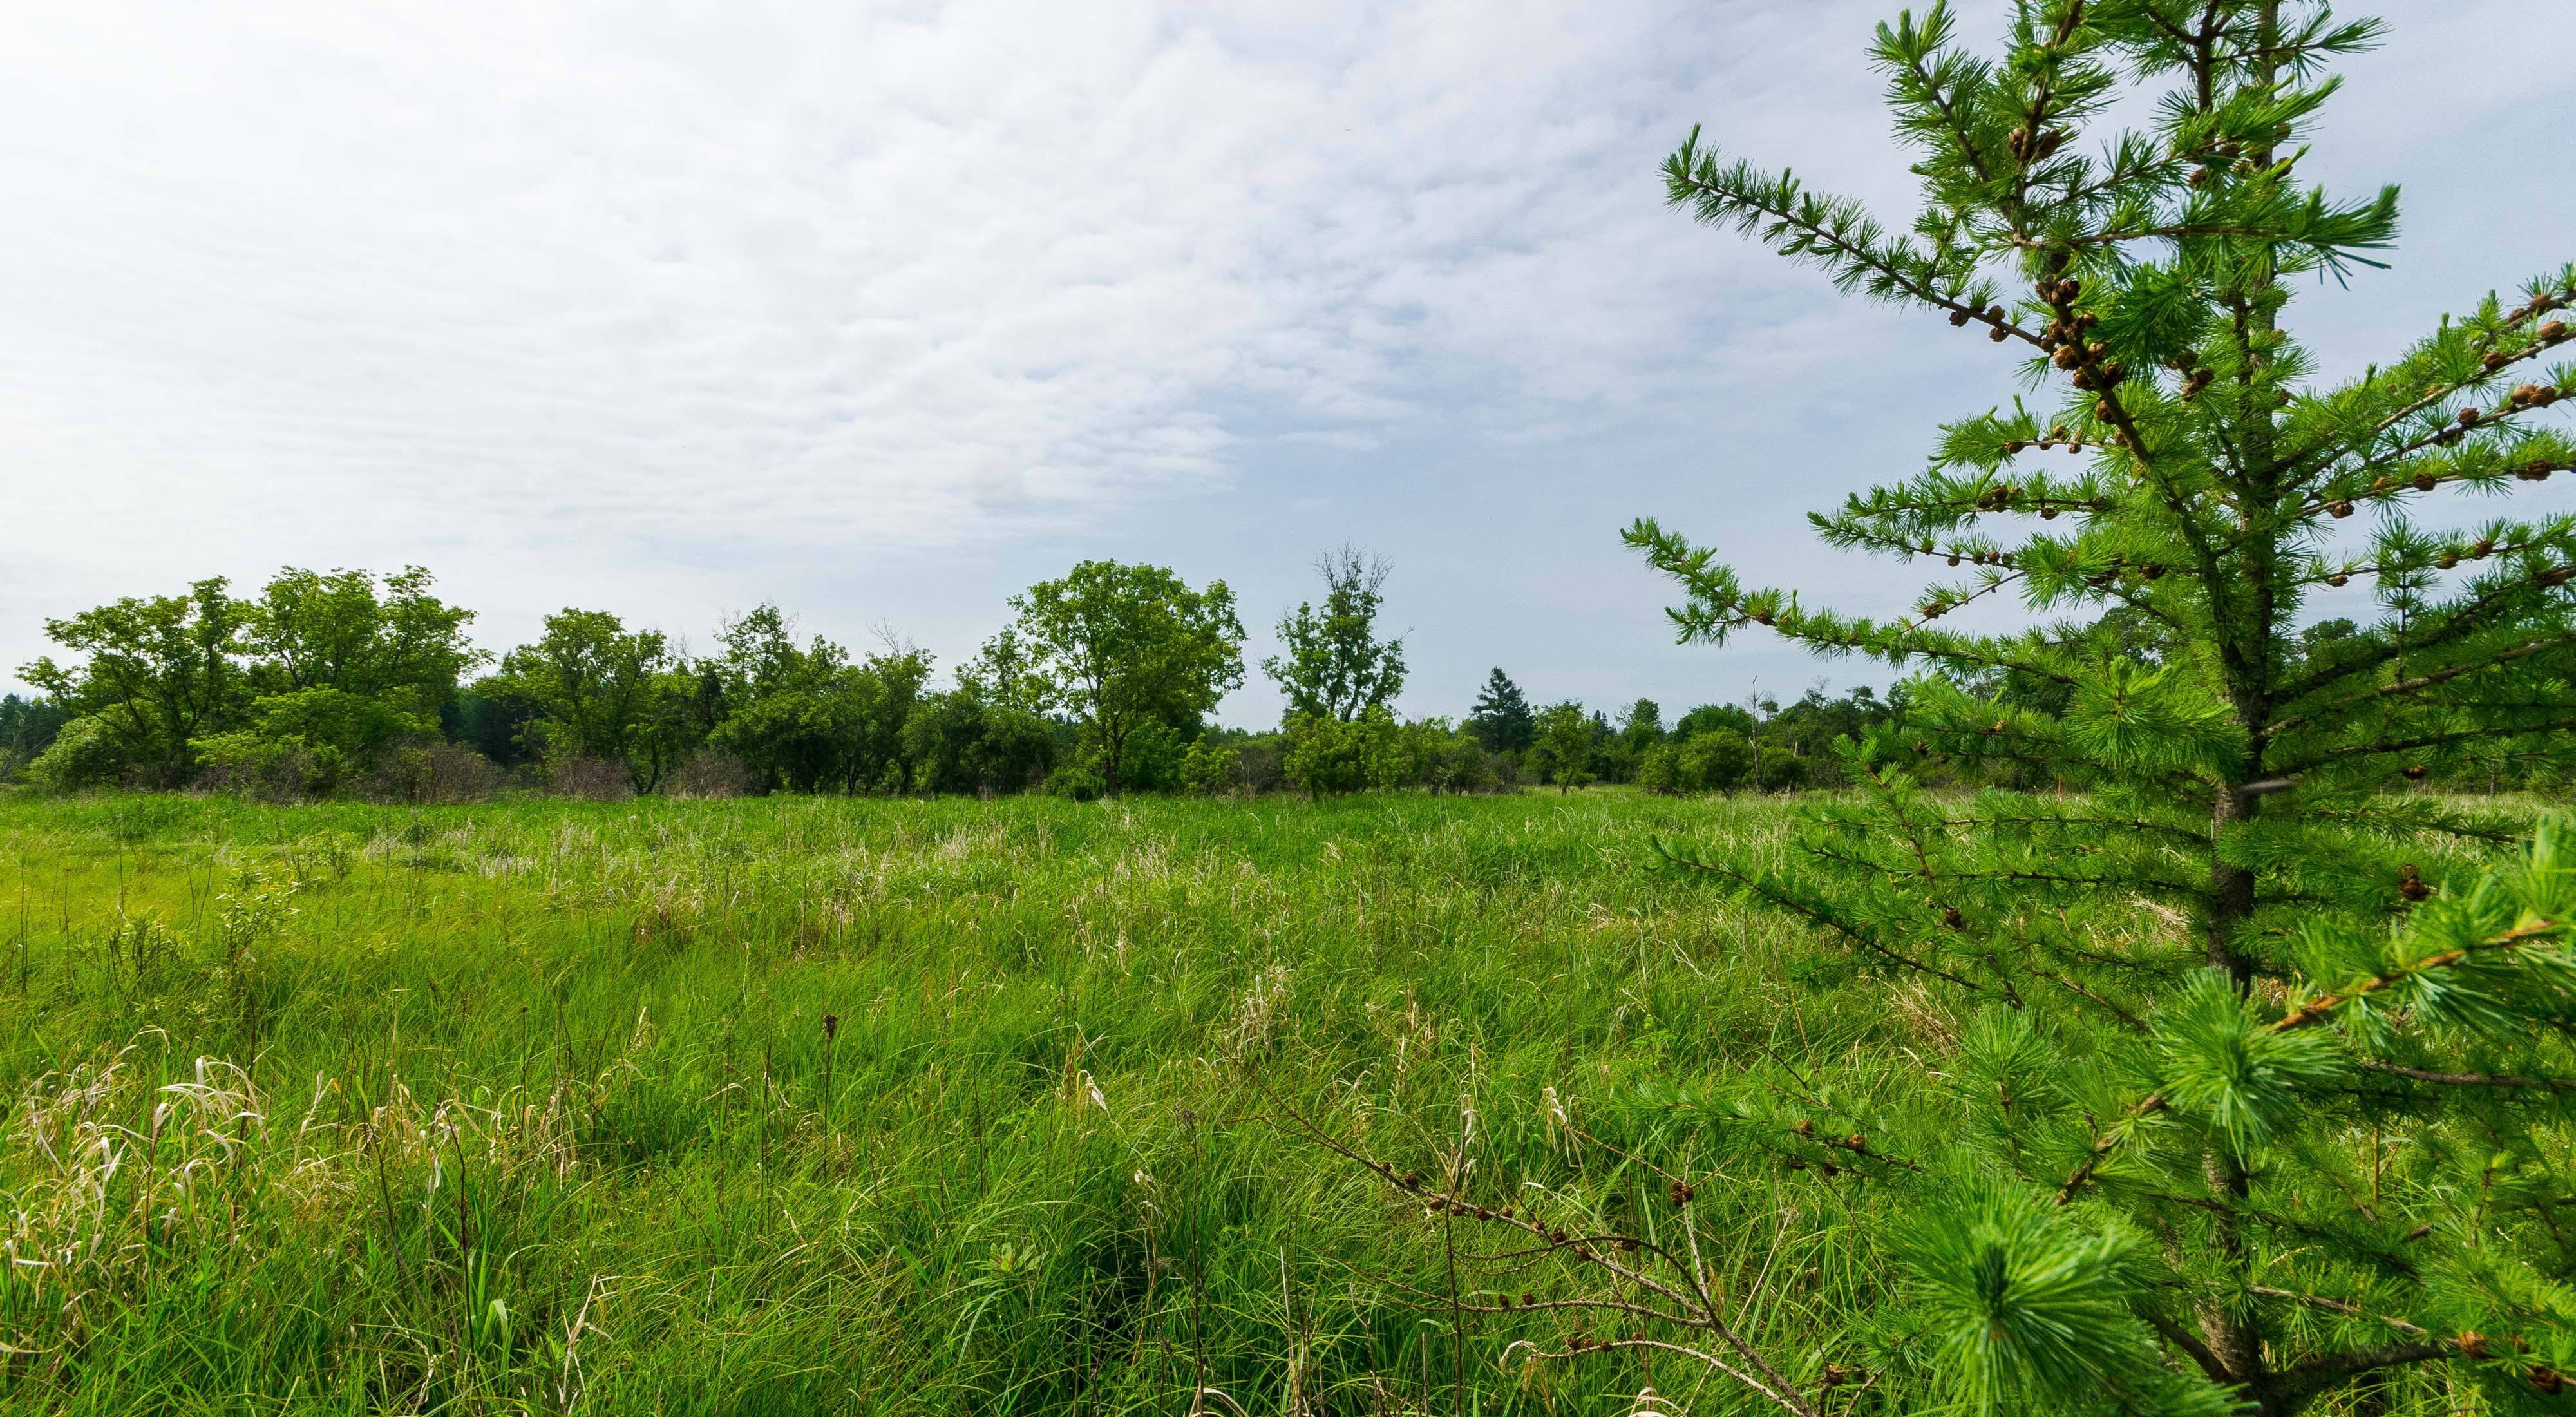 Tamarack and other trees frame the wetlands under a blue sky during summer at the Summerton Bog State Natural Area.